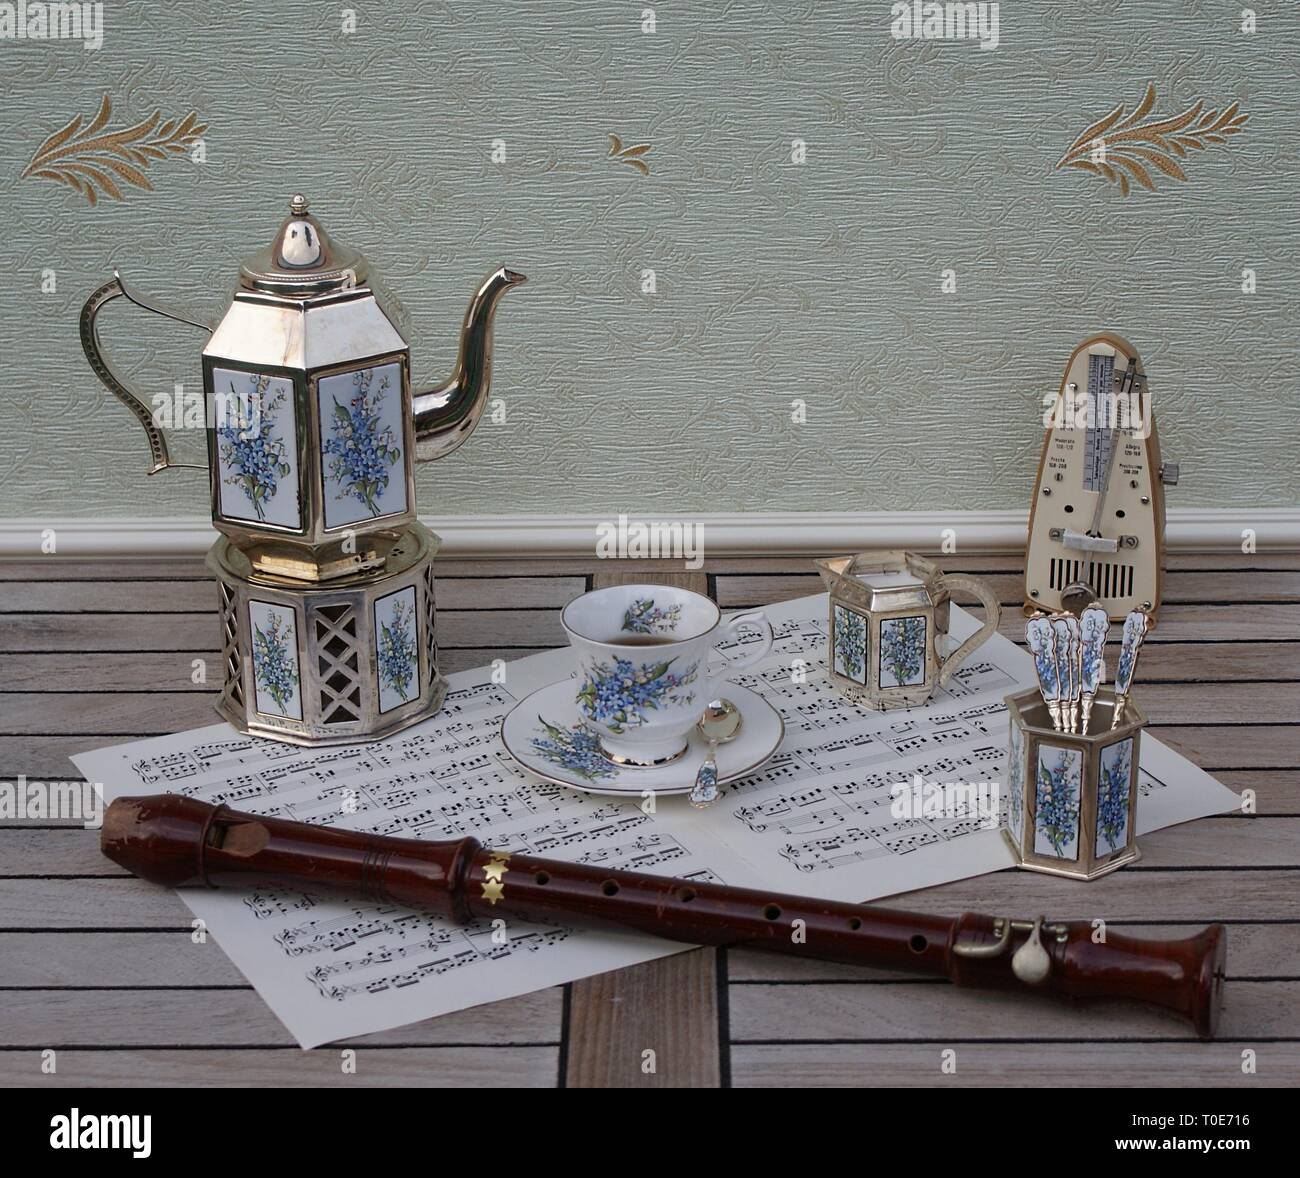 English teacup and saucer, silver-plated teapot, spoon vase, teaspoon, cream jug and metronome for music and a block flute on a sheet of music - Stock Image